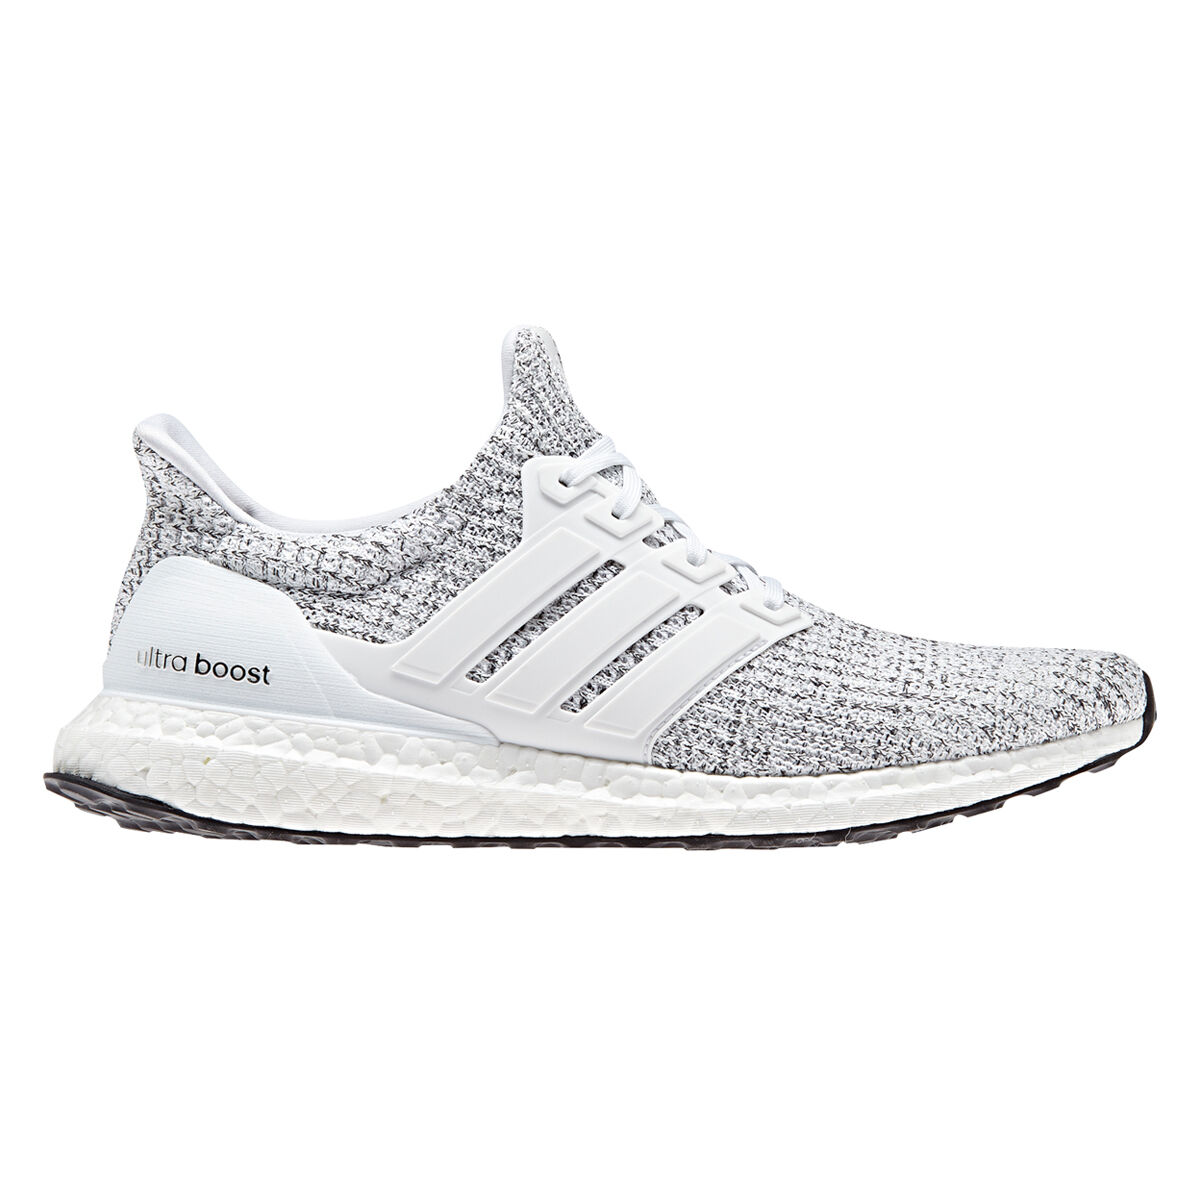 Adidas releases the Ultra Boost All White Canadian Running